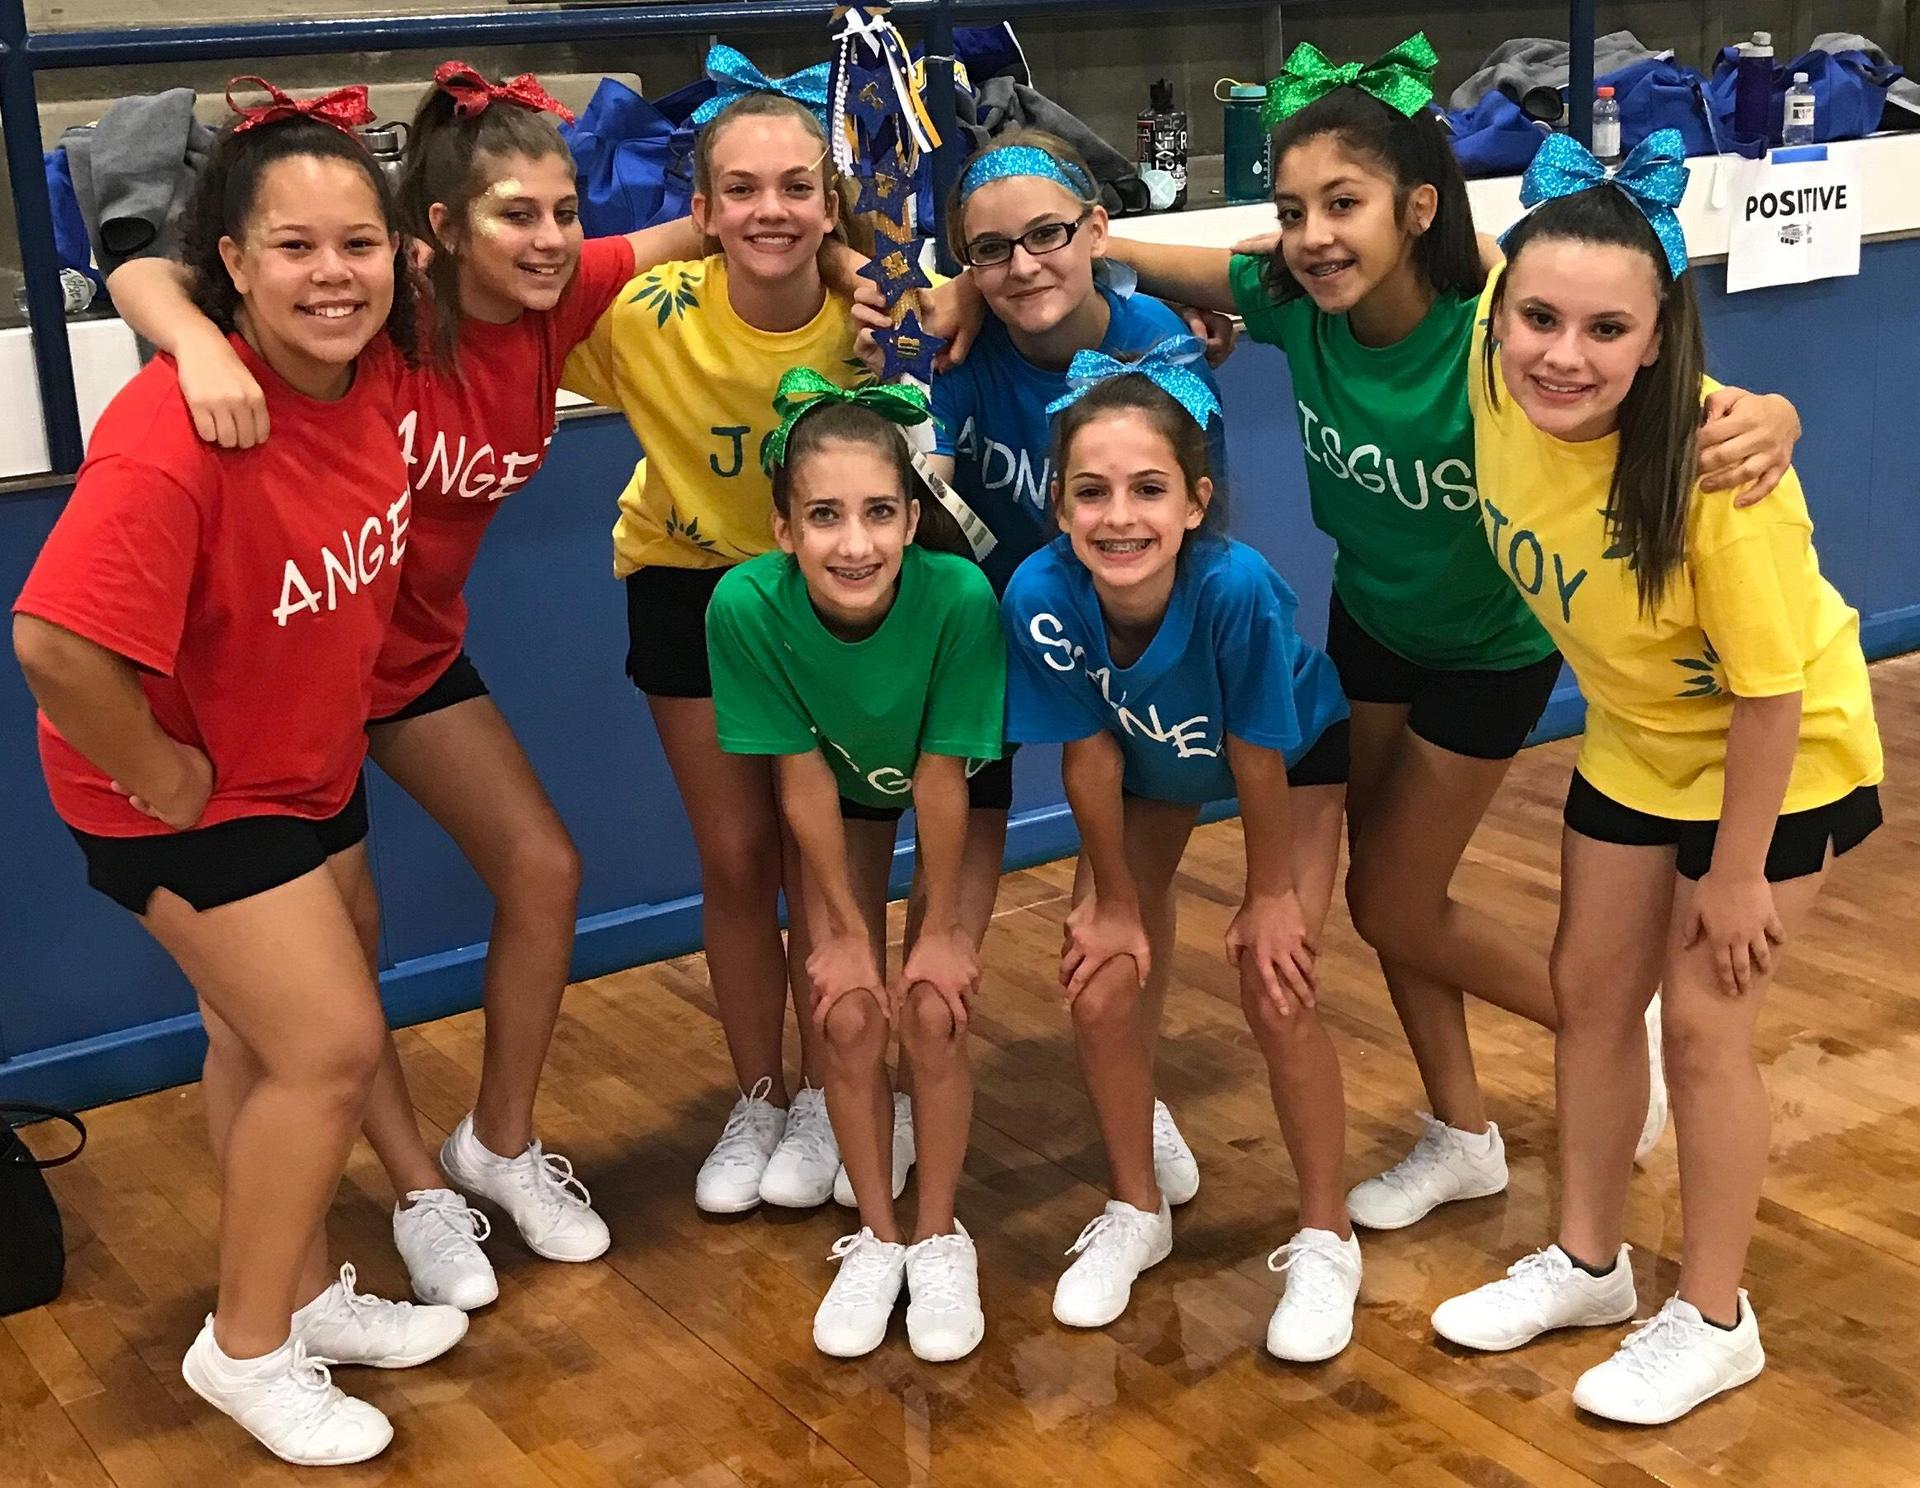 Cheer Camp Fun Day was Inside Out!